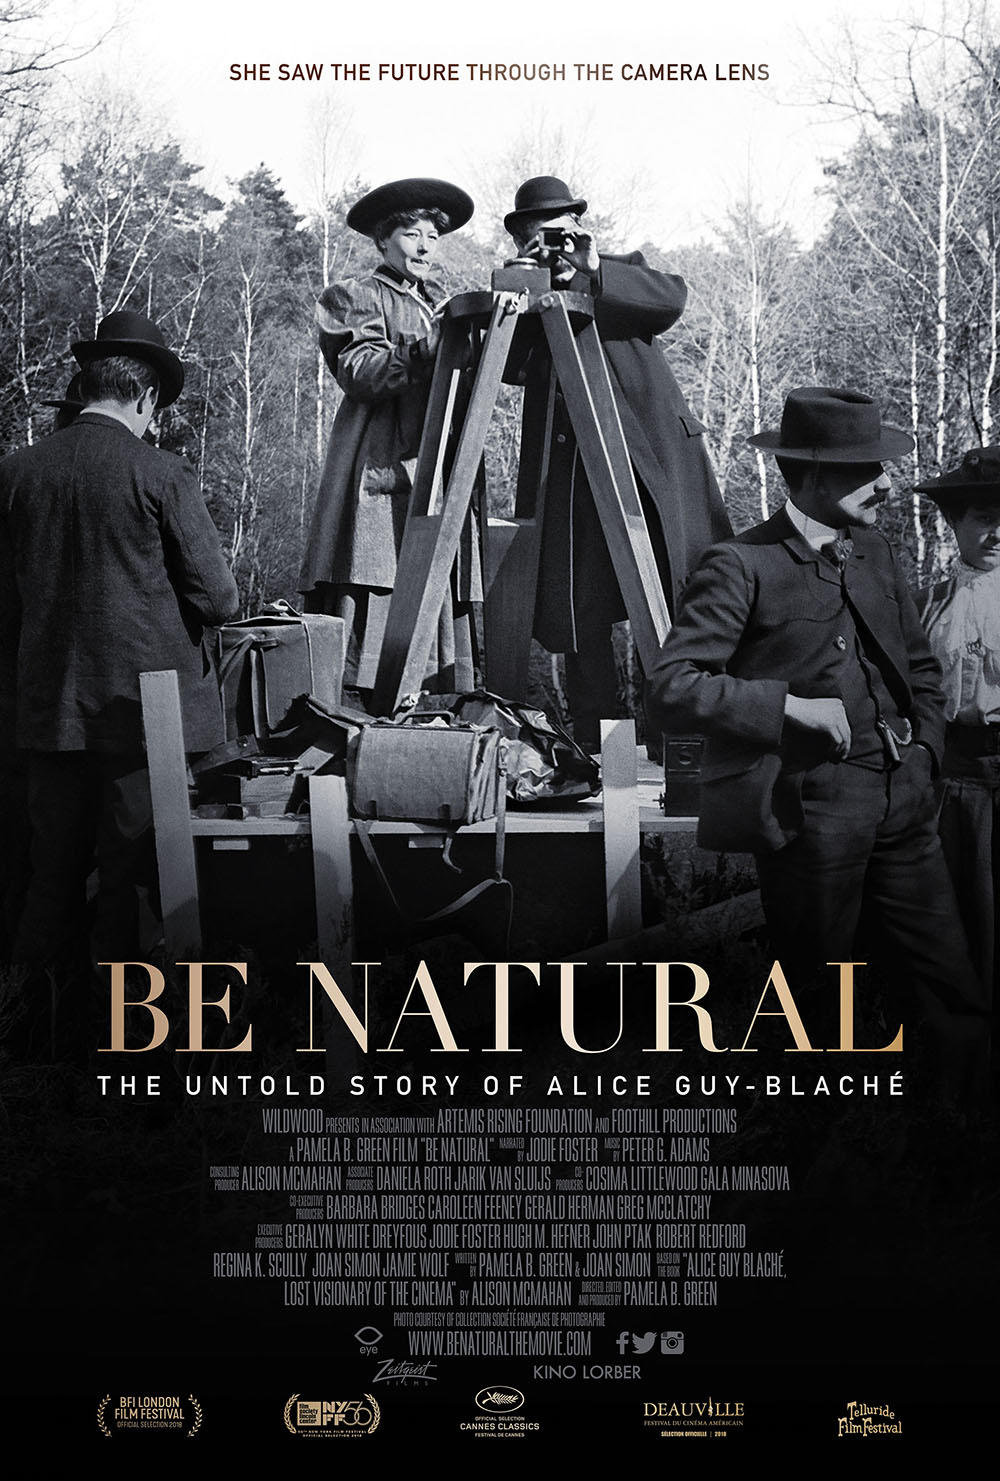 Be Natural: The Untold Story of Alice Guy-Blache poster art